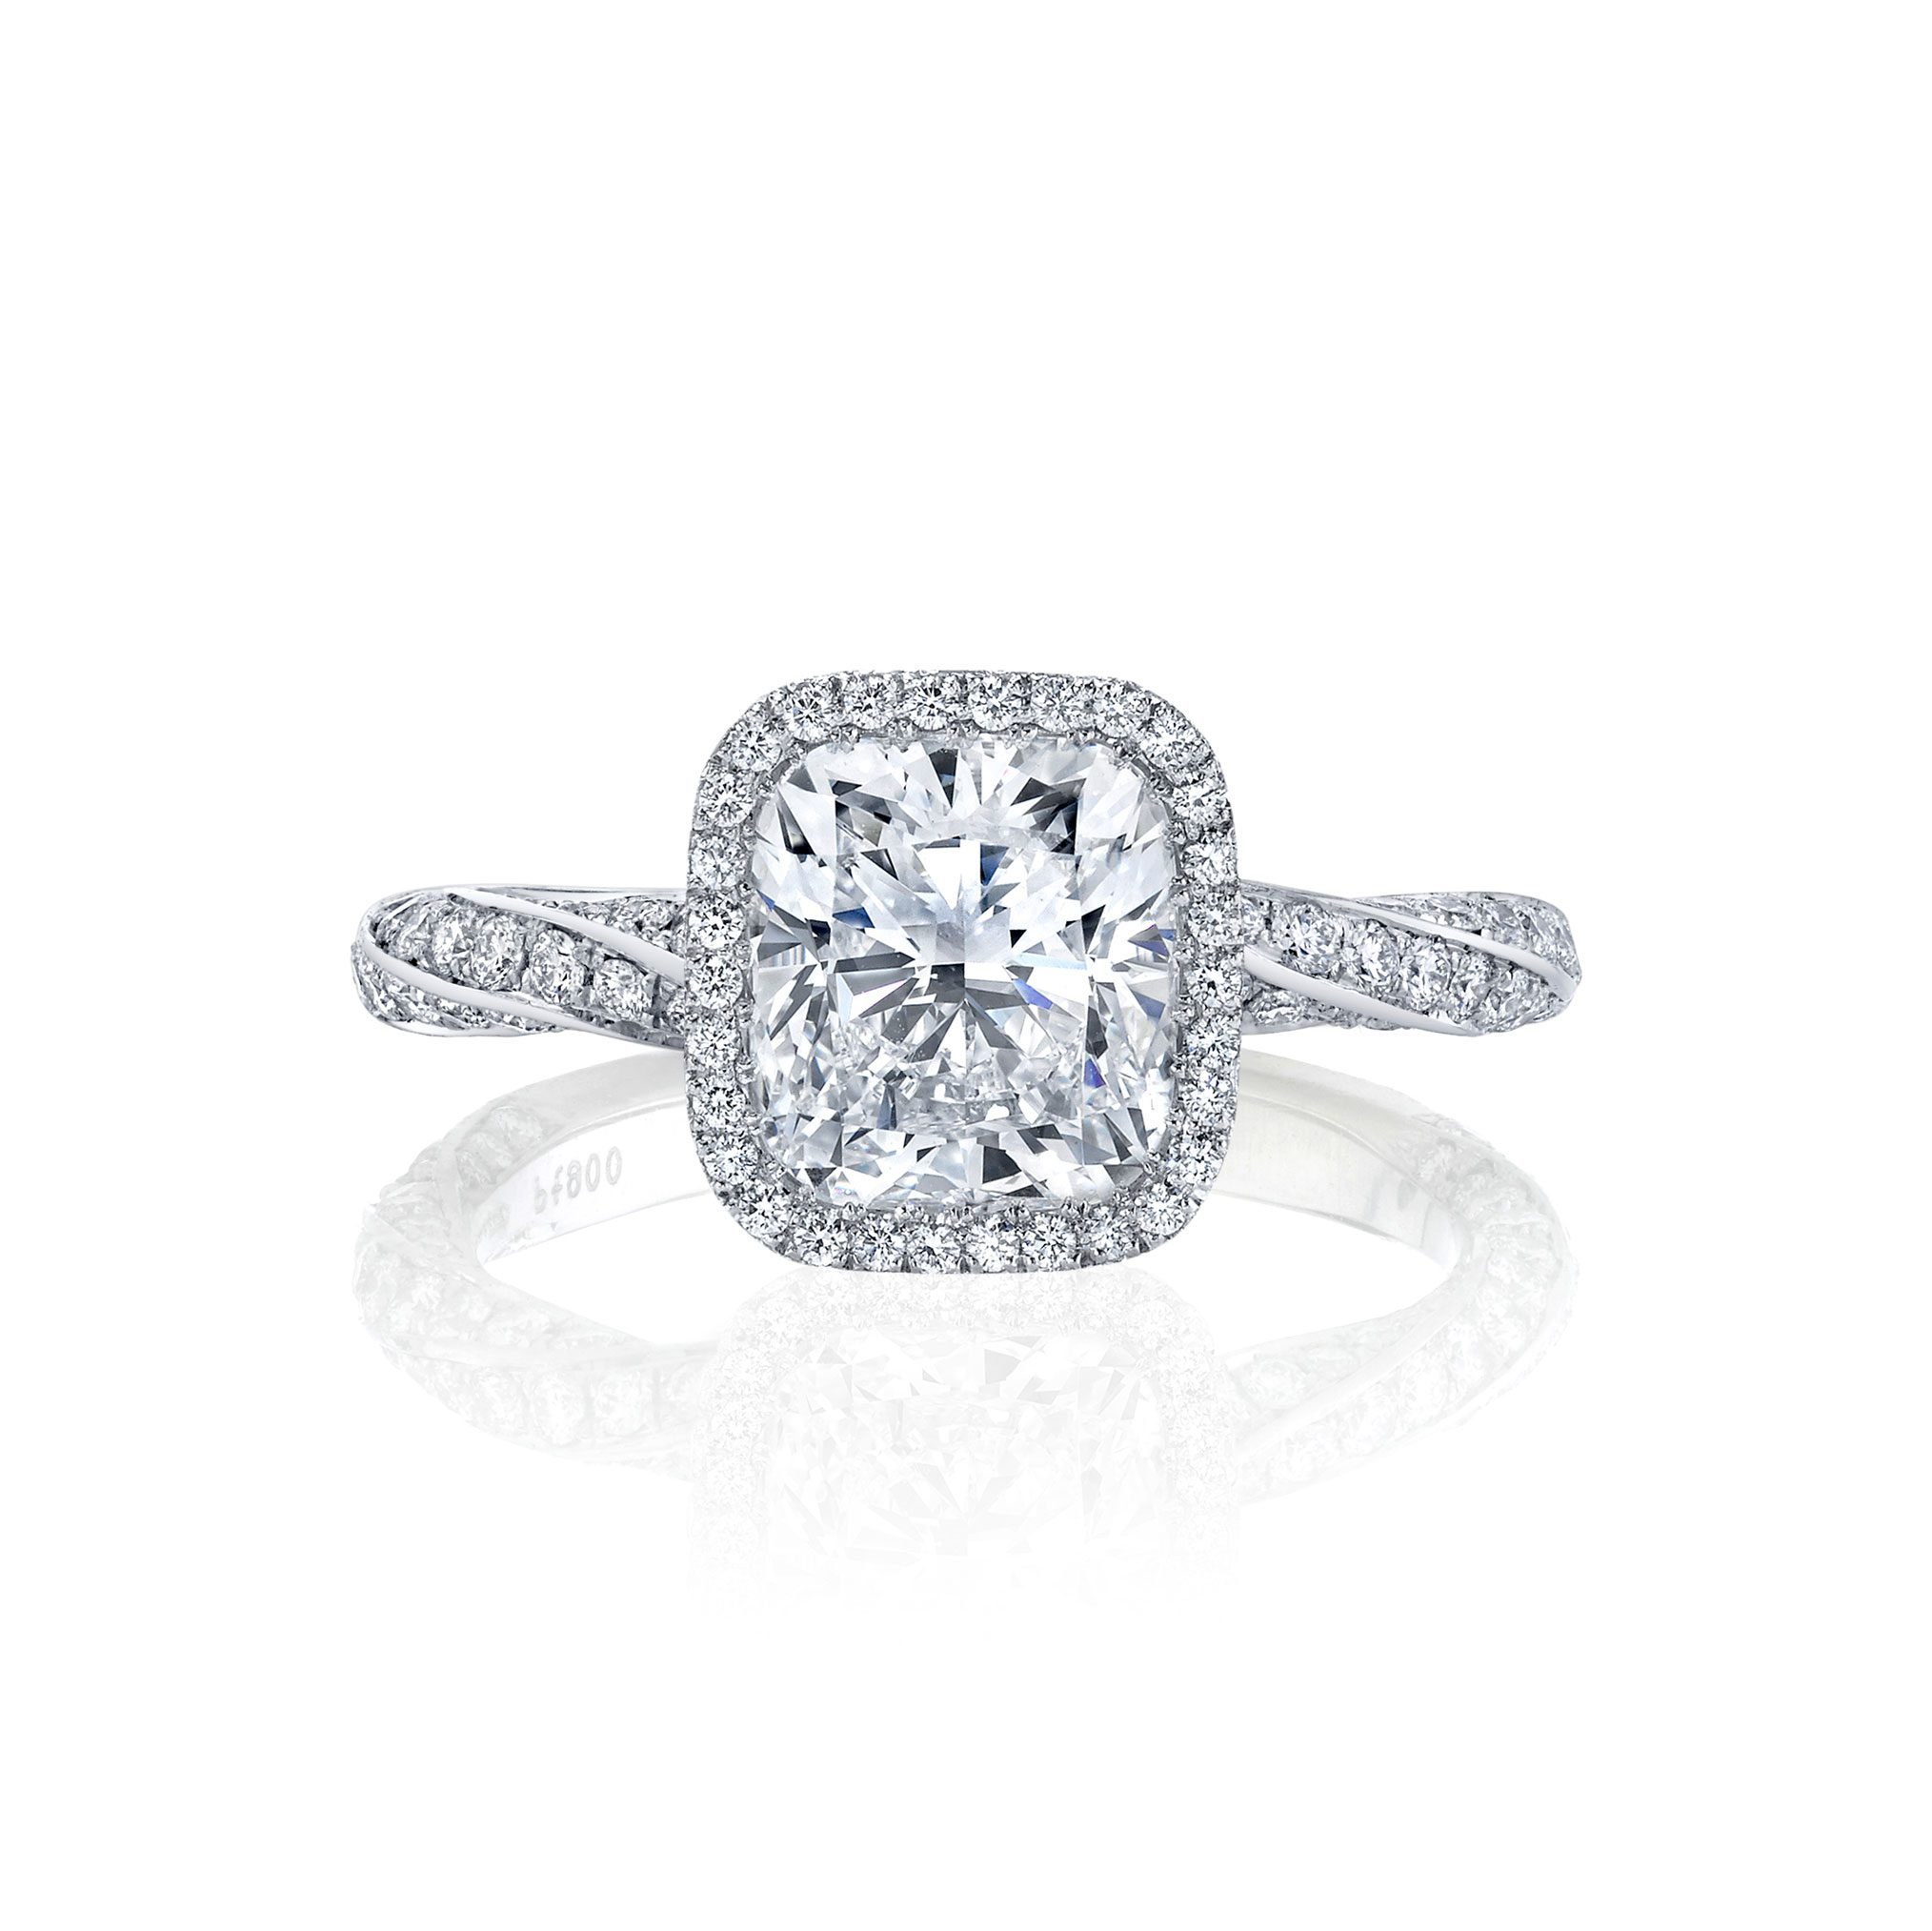 Camille Seamless Halo® Engagement Ring Cushion Cut with 18k white gold twisted pavé band